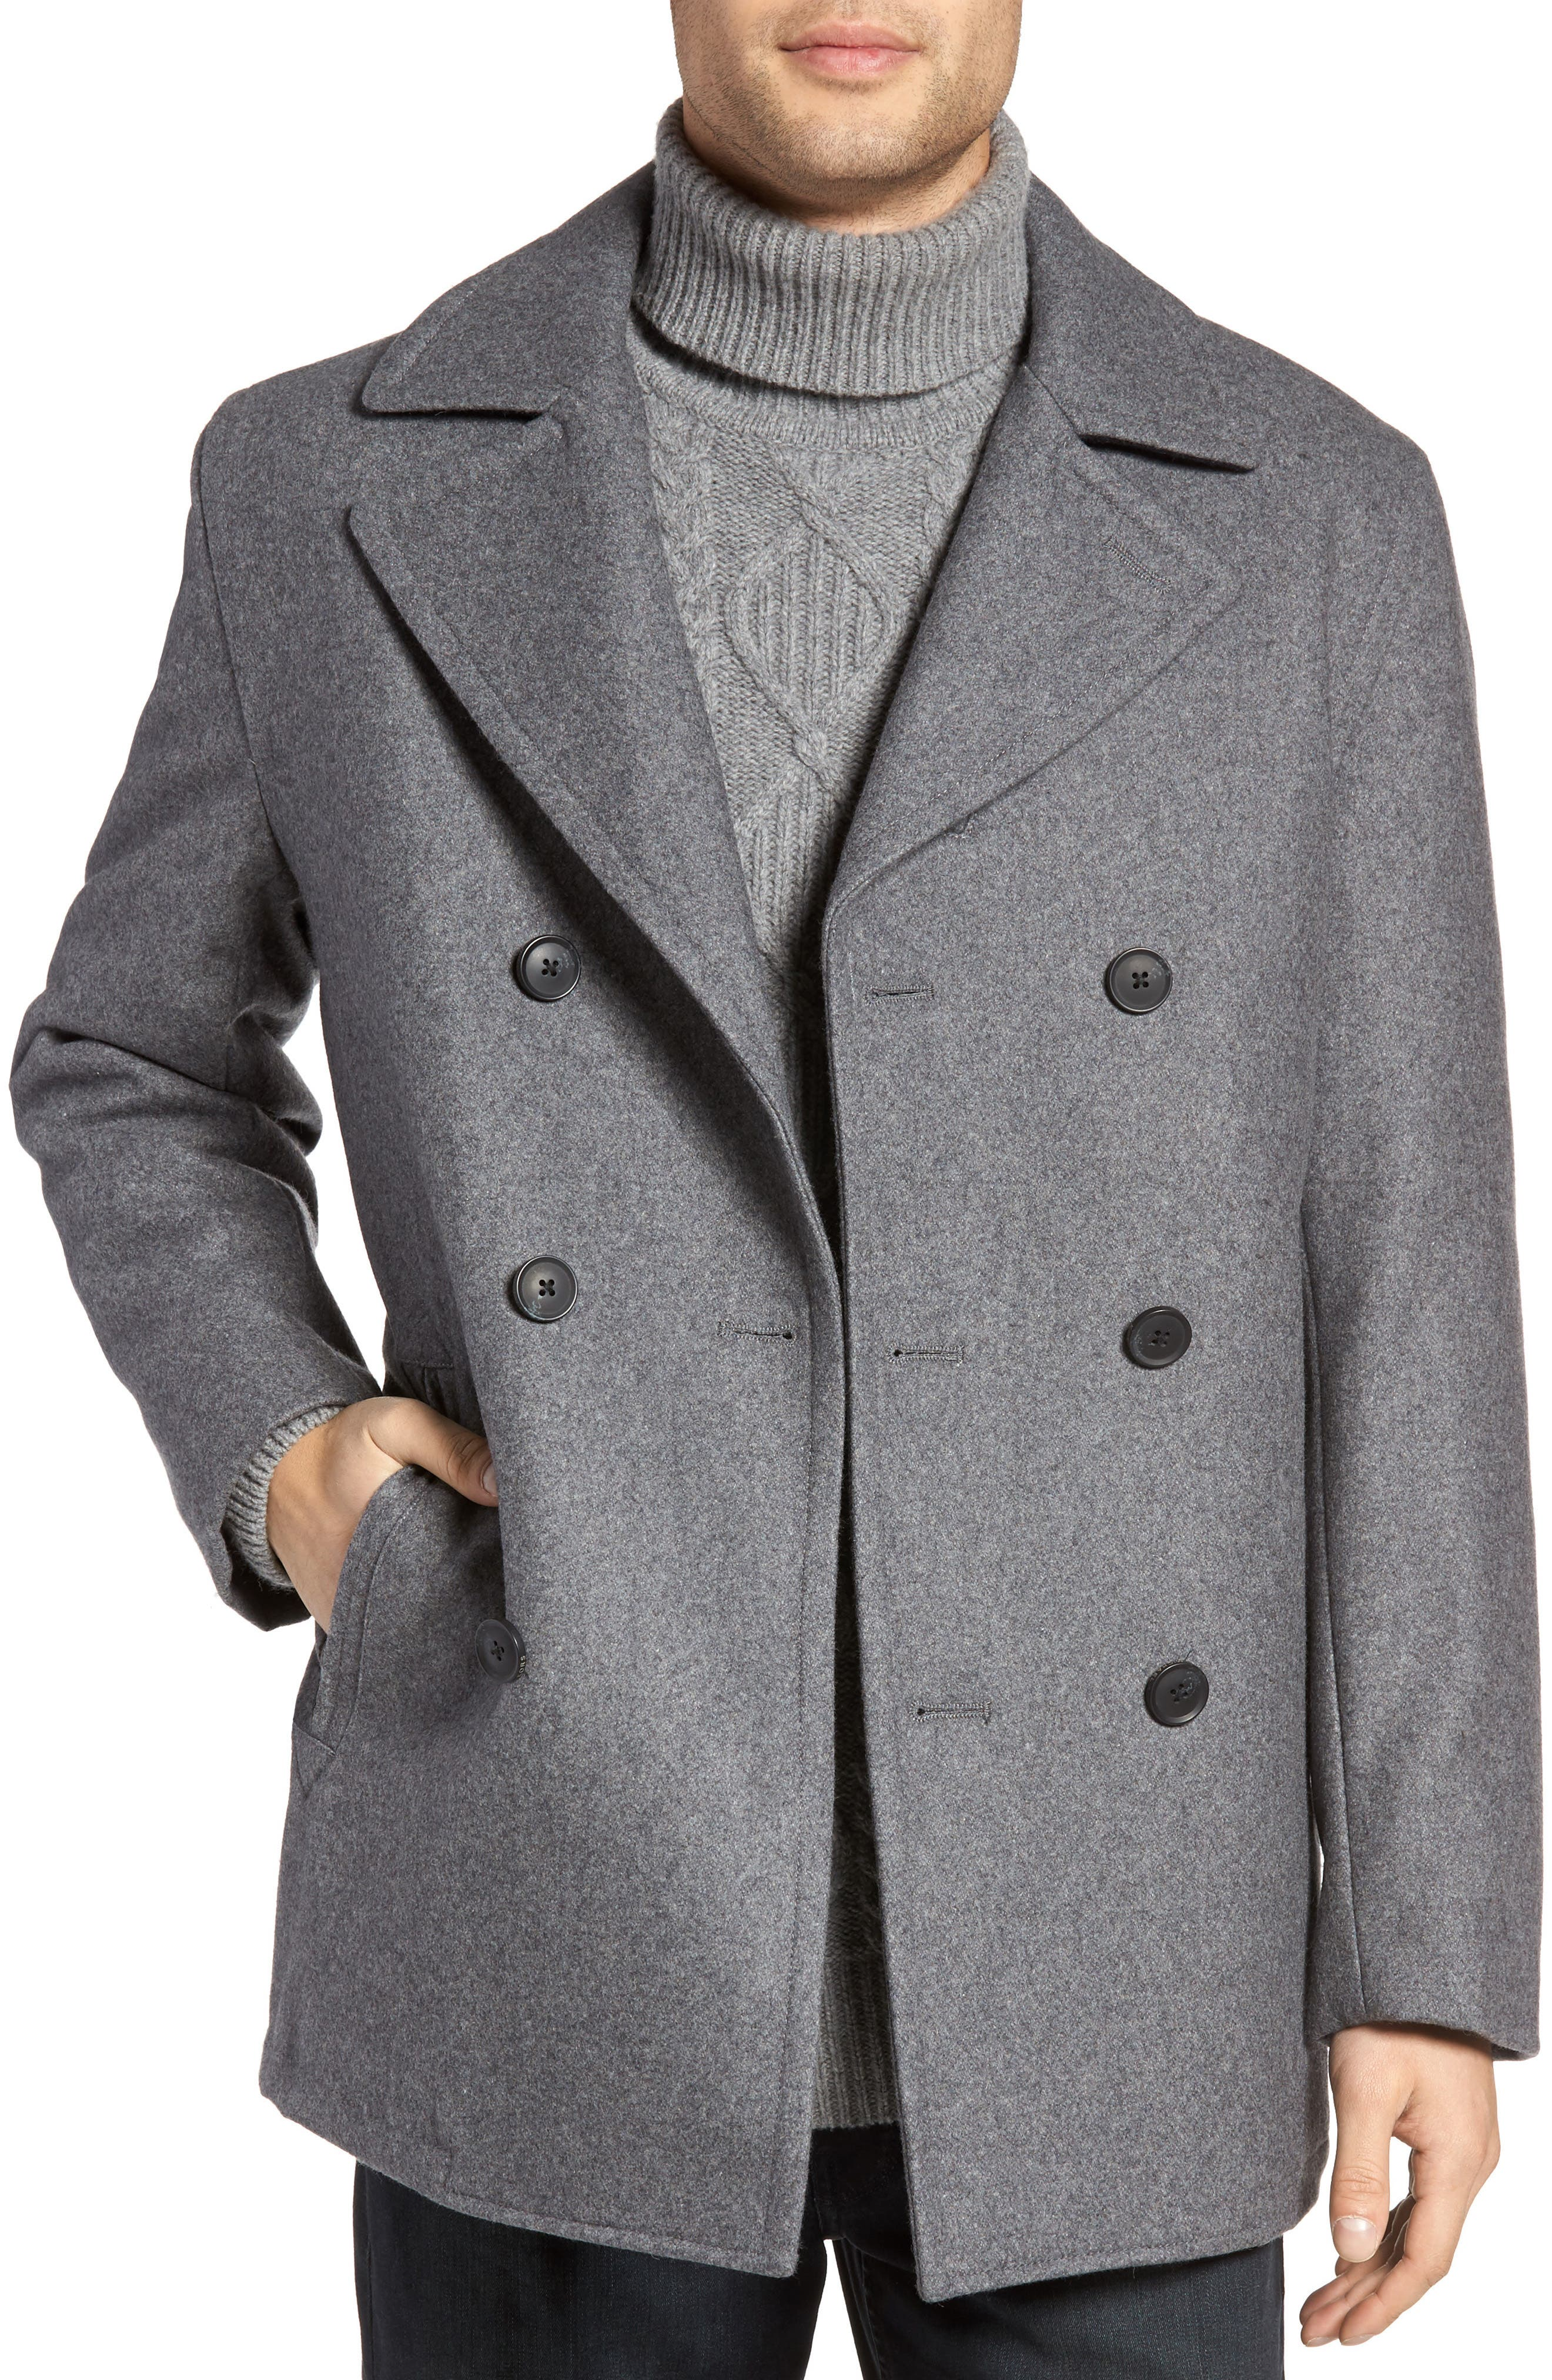 Wool Blend Double Breasted Peacoat,                             Alternate thumbnail 23, color,